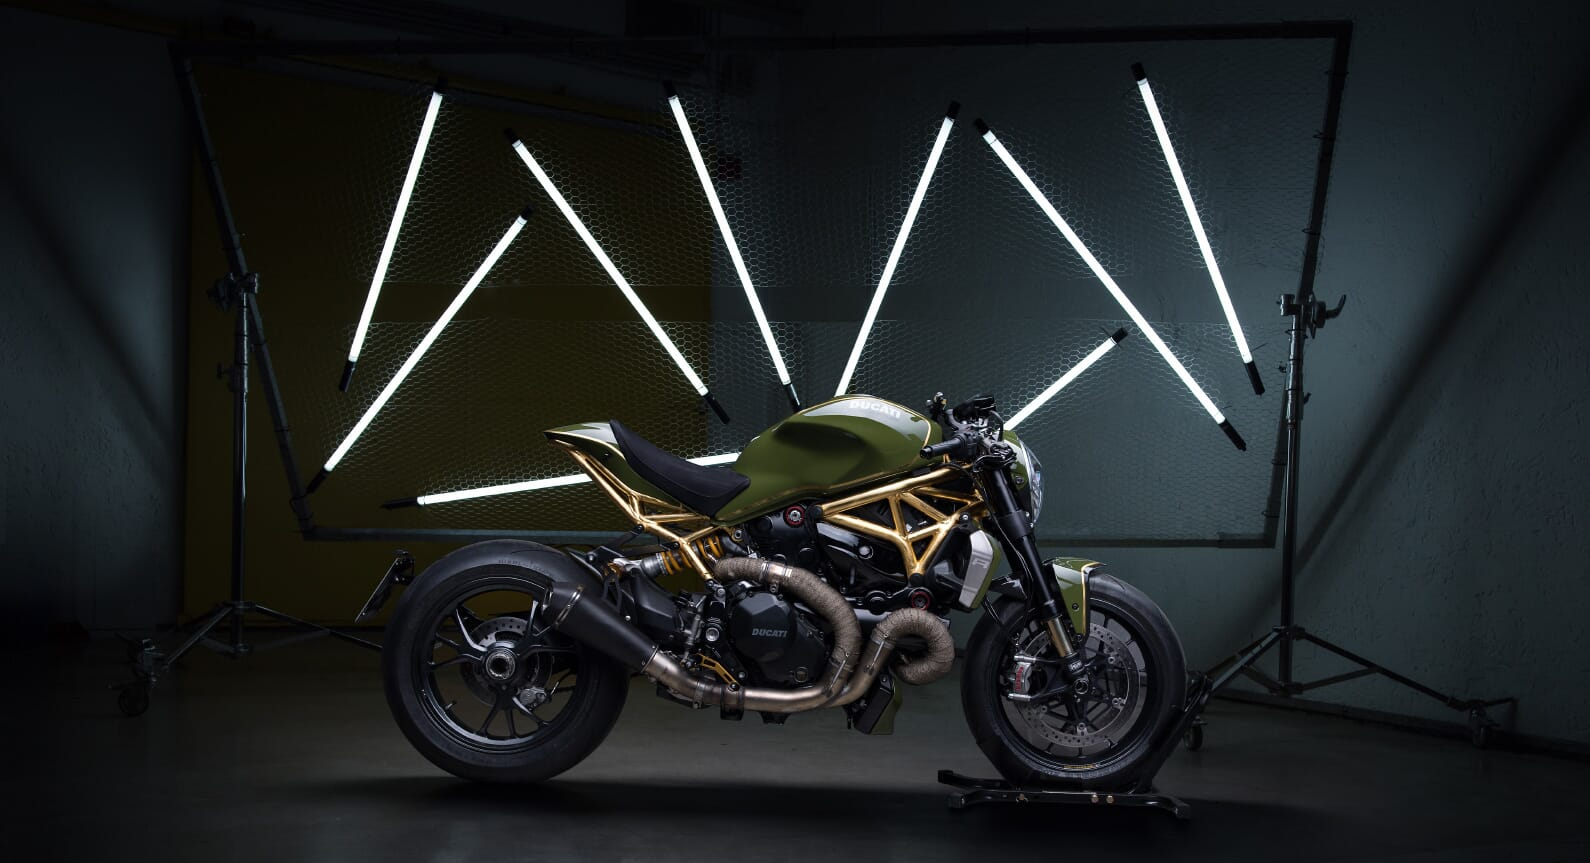 Diamond Atelier's Outrageous 1200R With 24K Gold Accents